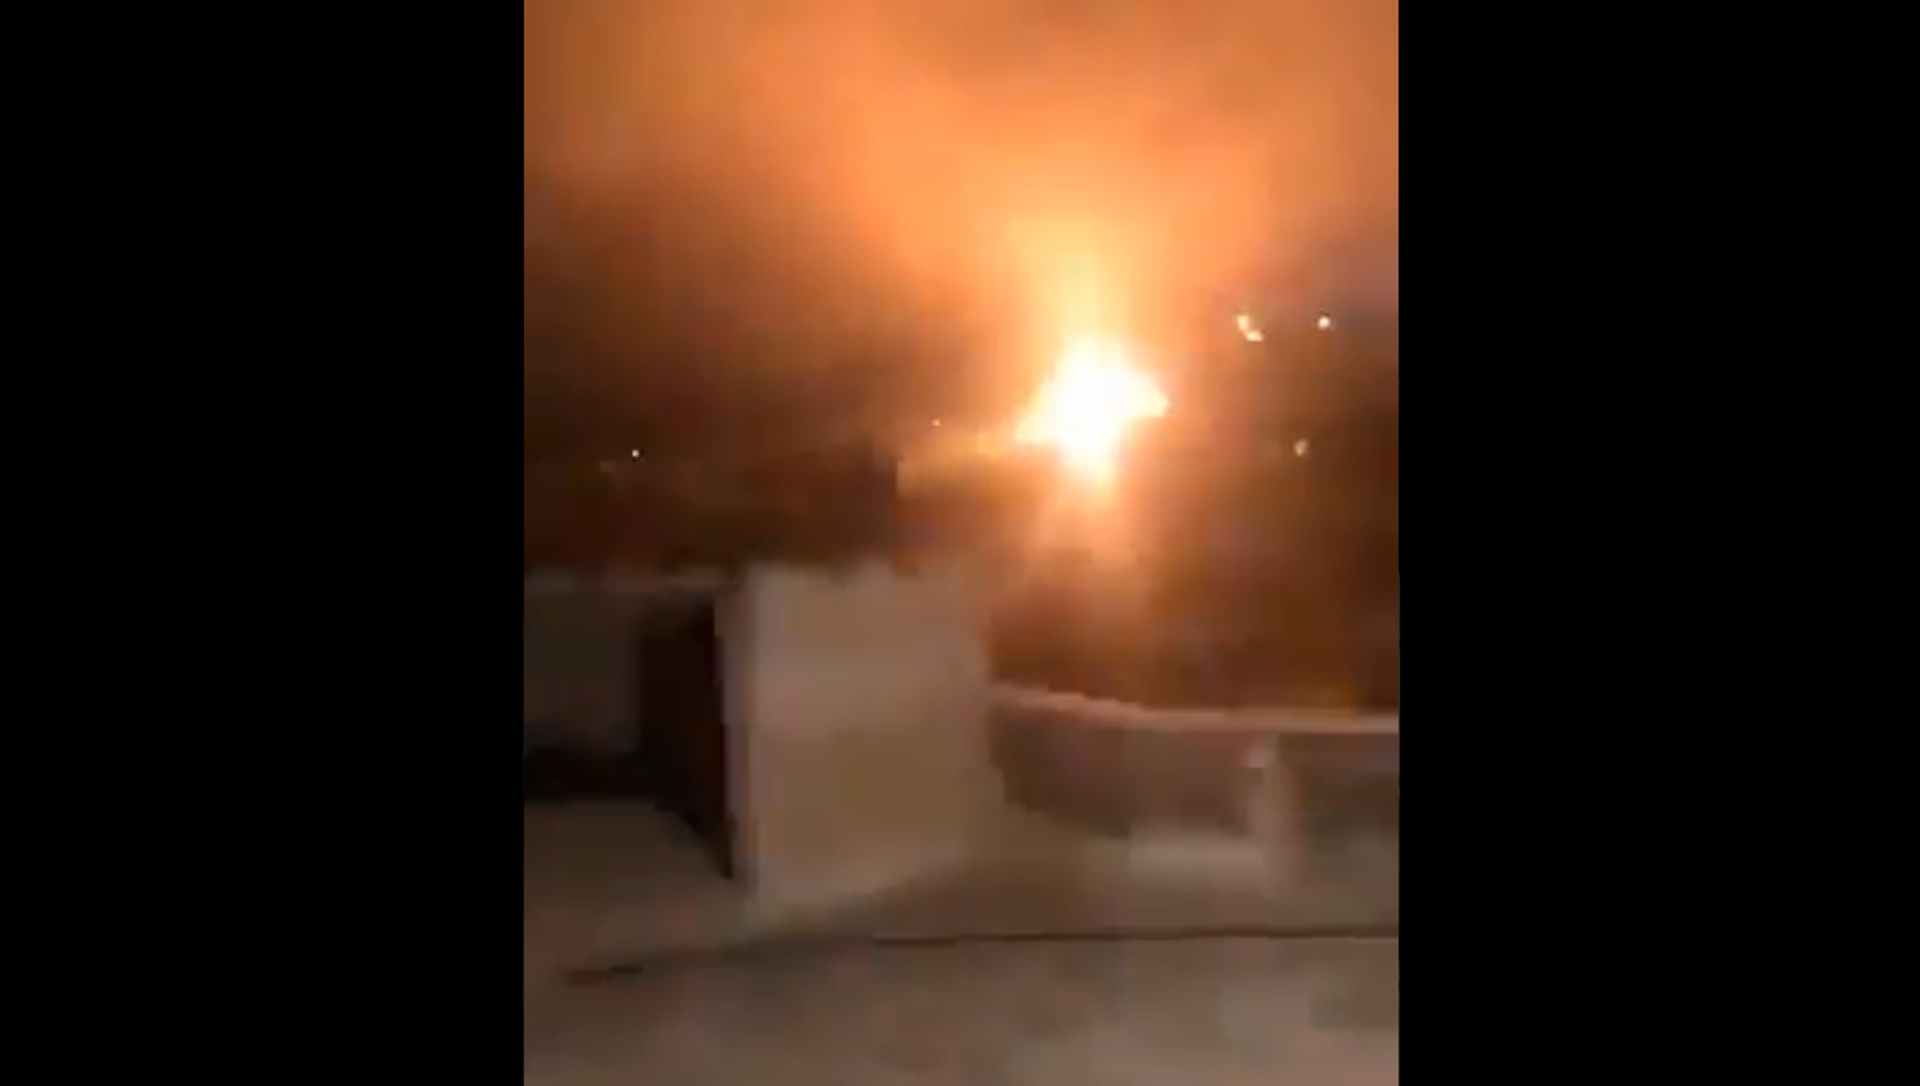 Screenshot from a video allegedly showing the IDF responding to rocket fire in the area of Misgav Am, in the northern part of Israel - Sputnik International, 1920, 17.05.2021